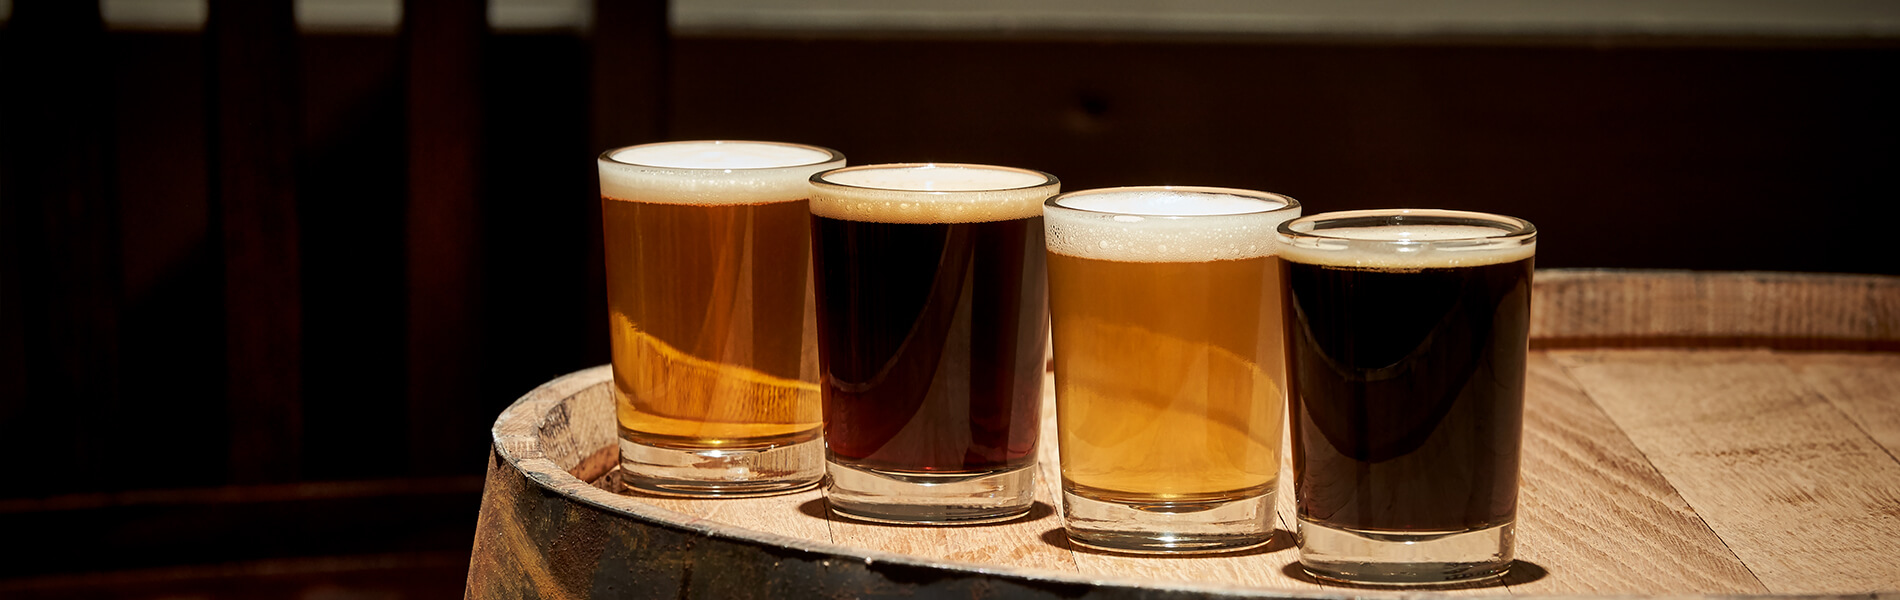 Beer-enthusiast's paradise - sample hand-crafted brews from around the world.